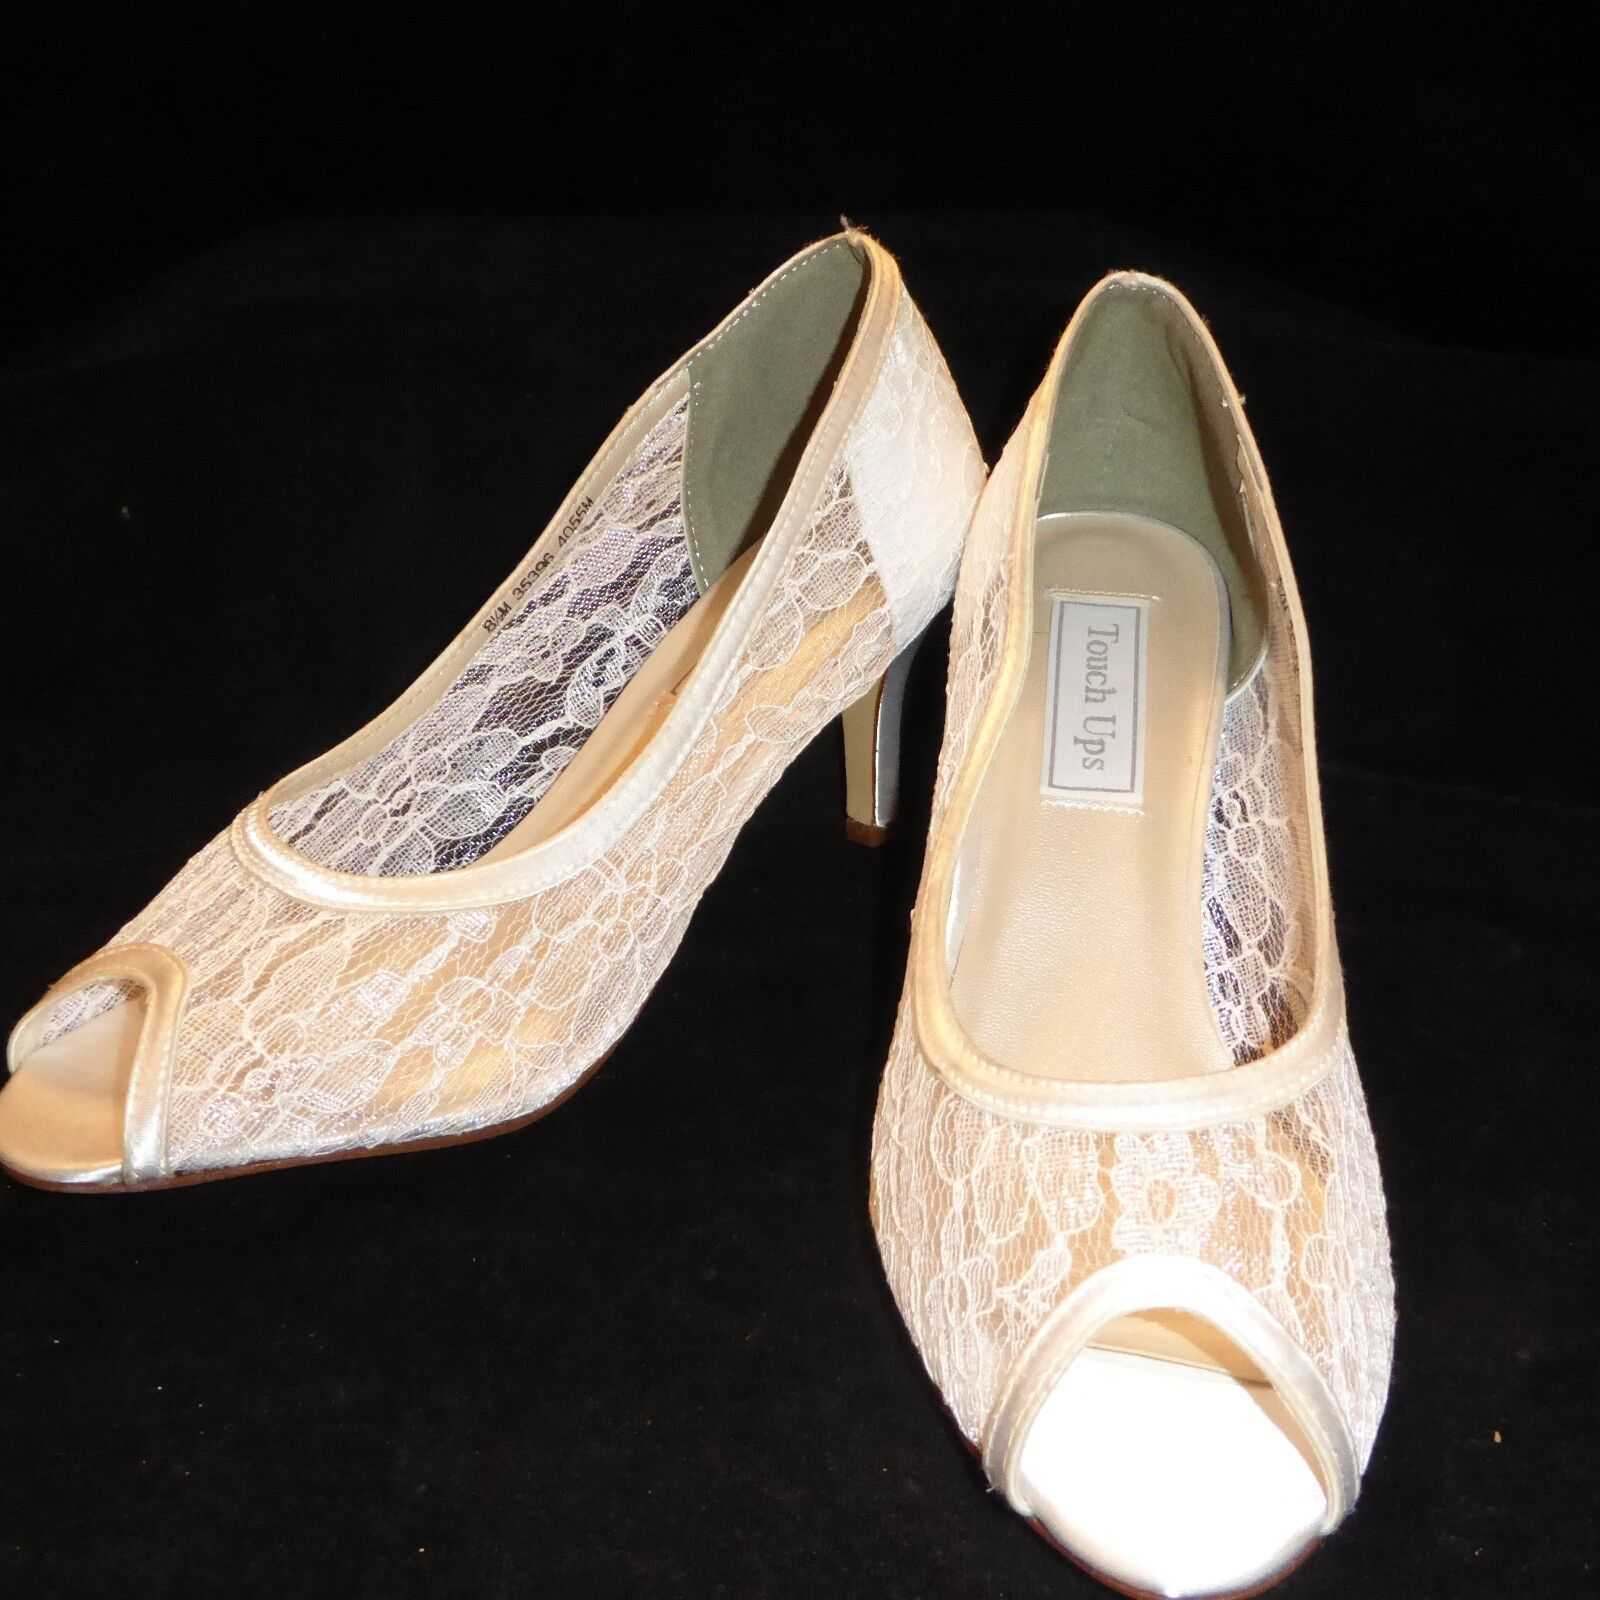 Touch Ups Damenschuhe Weiß Lace Dress Pumps US Heels 8.5 M 3